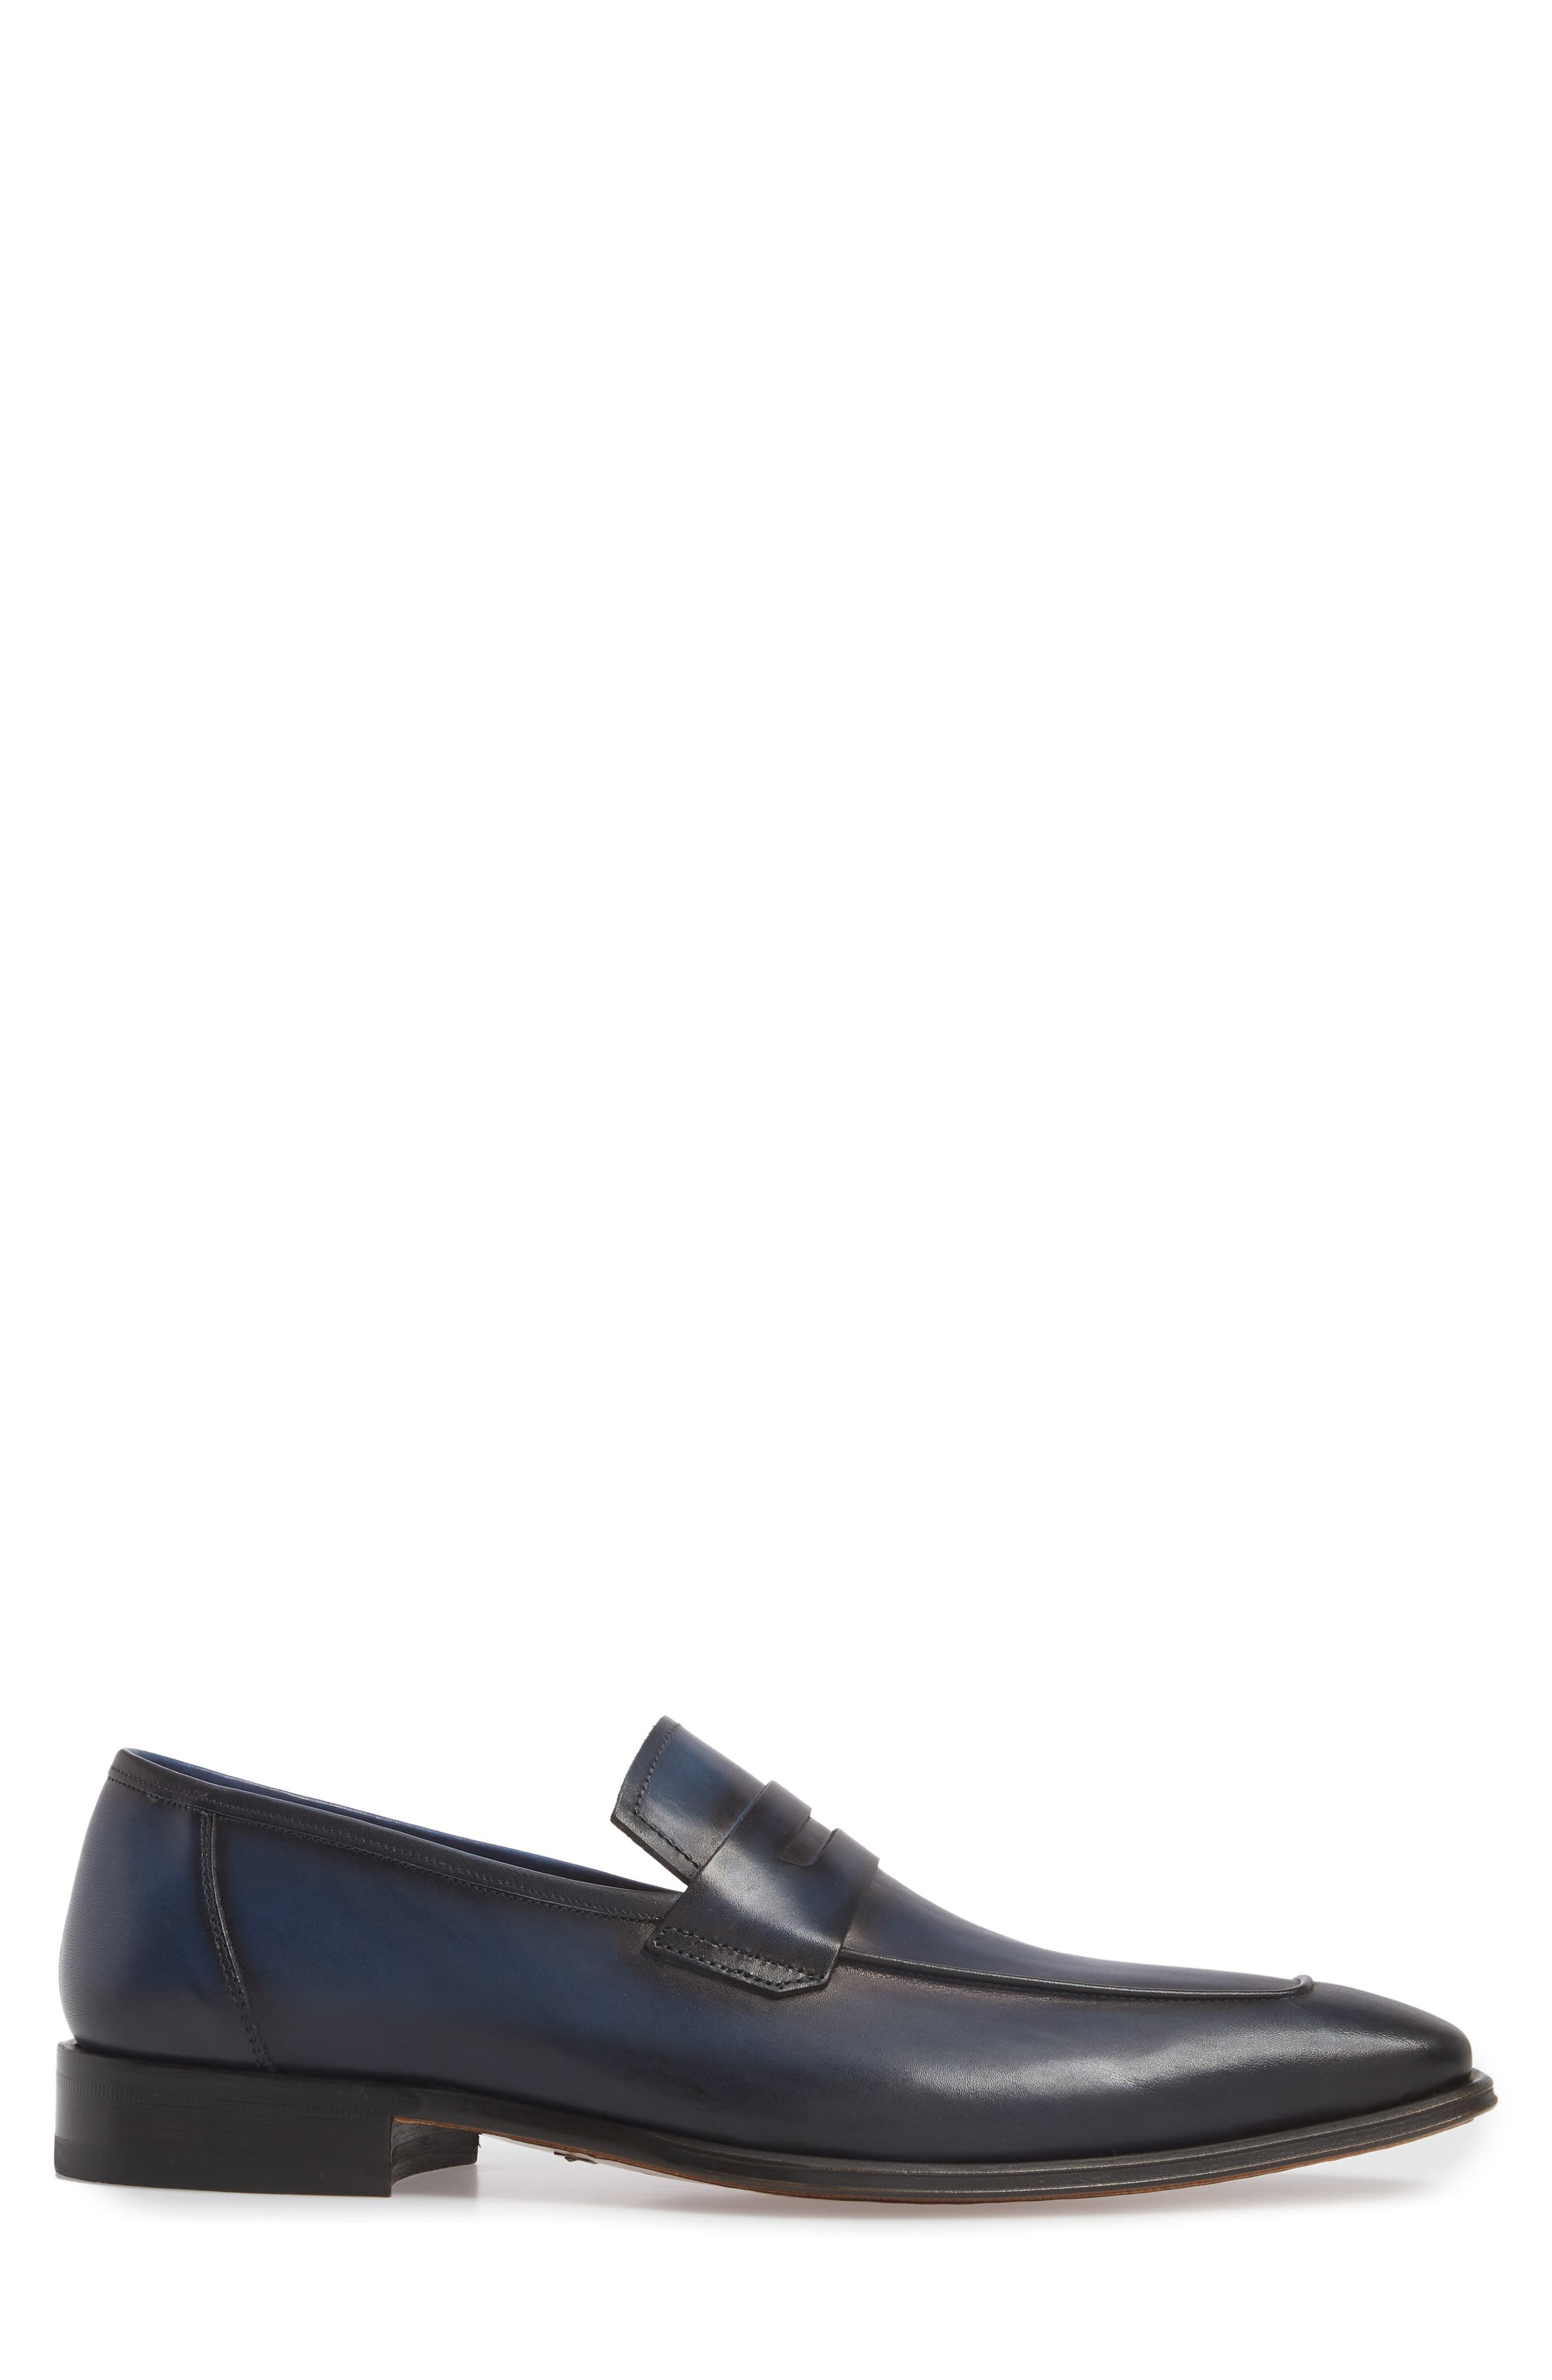 Marcus Penny Loafer,                             Alternate thumbnail 3, color,                             Mid Blue Leather